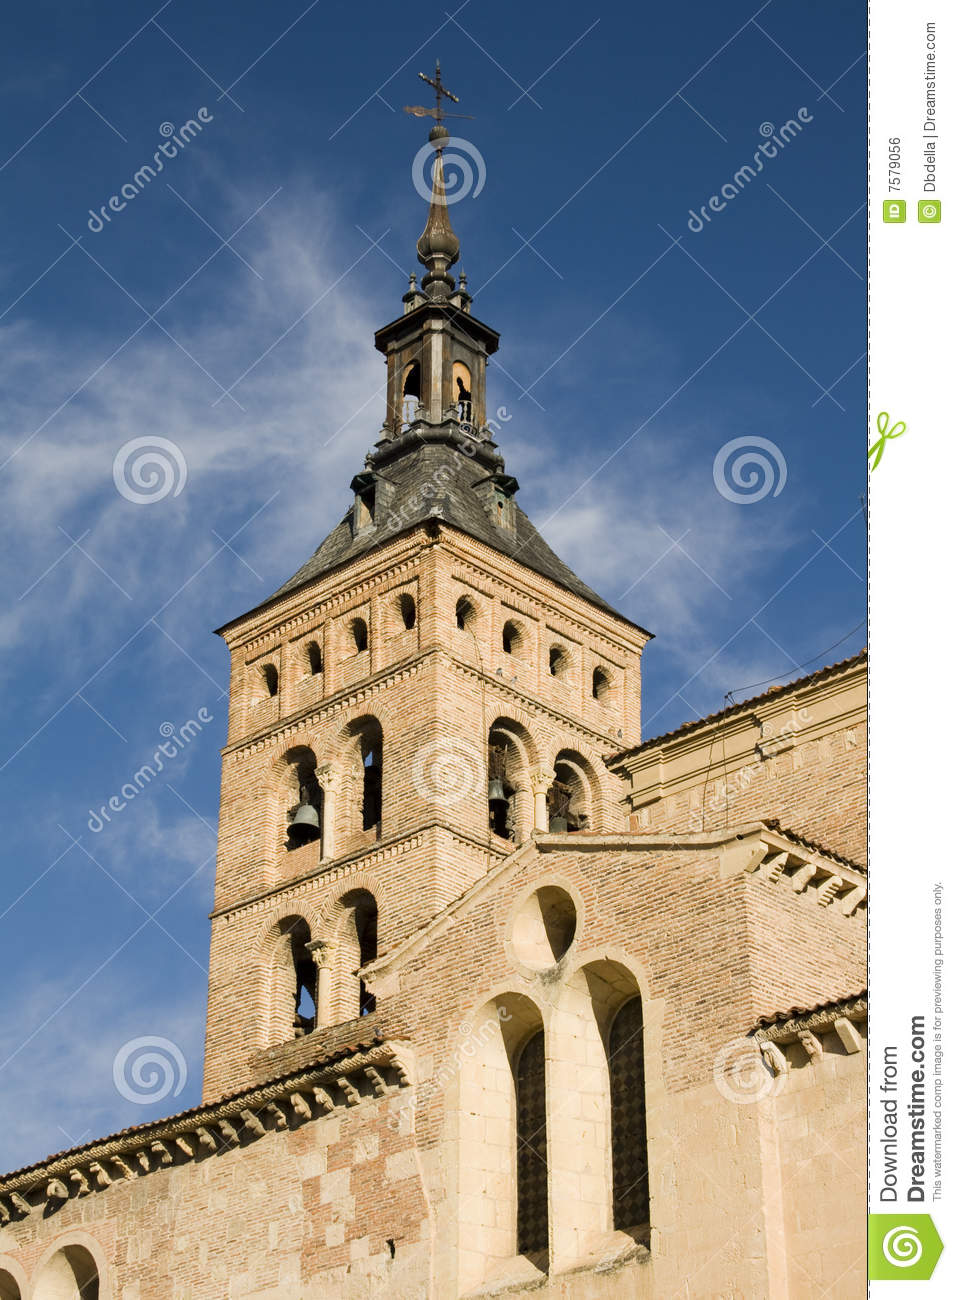 st martin bell tower segovia royalty free stock image. Black Bedroom Furniture Sets. Home Design Ideas